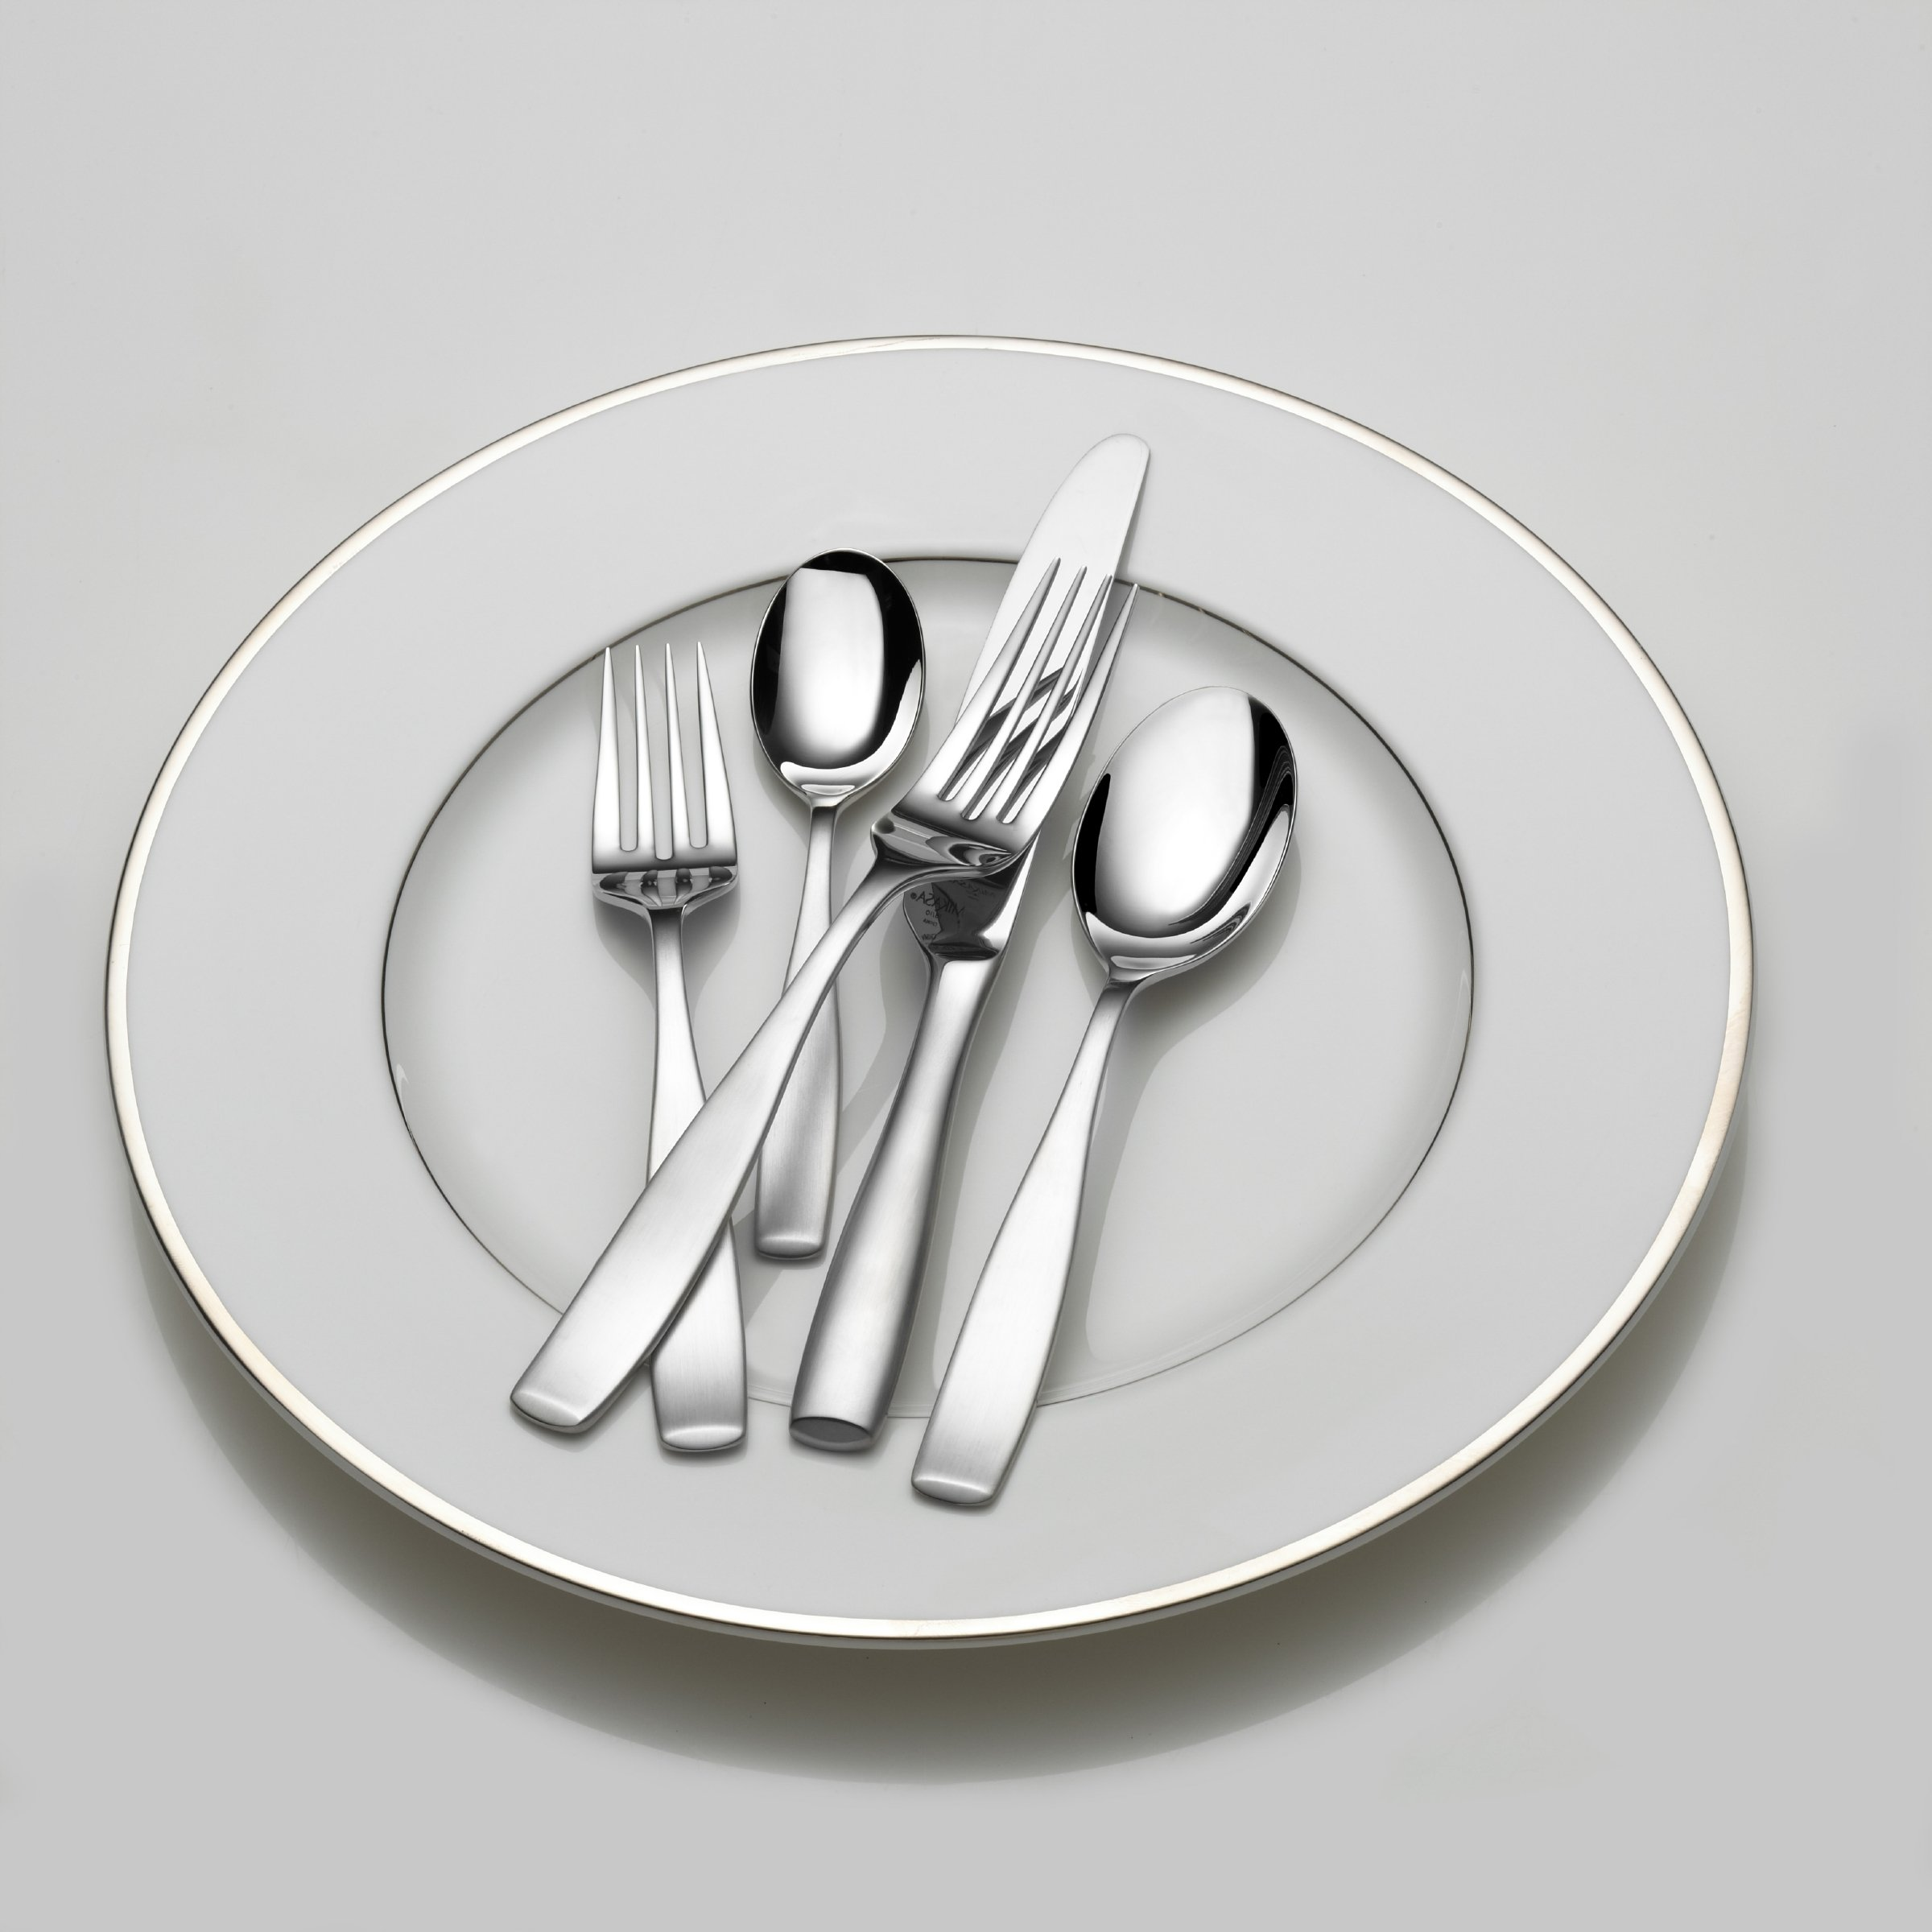 Mikasa Satin Loft 65-Piece Stainless Steel Flatware Set with Serveware, Service for 12 by Mikasa (Image #4)